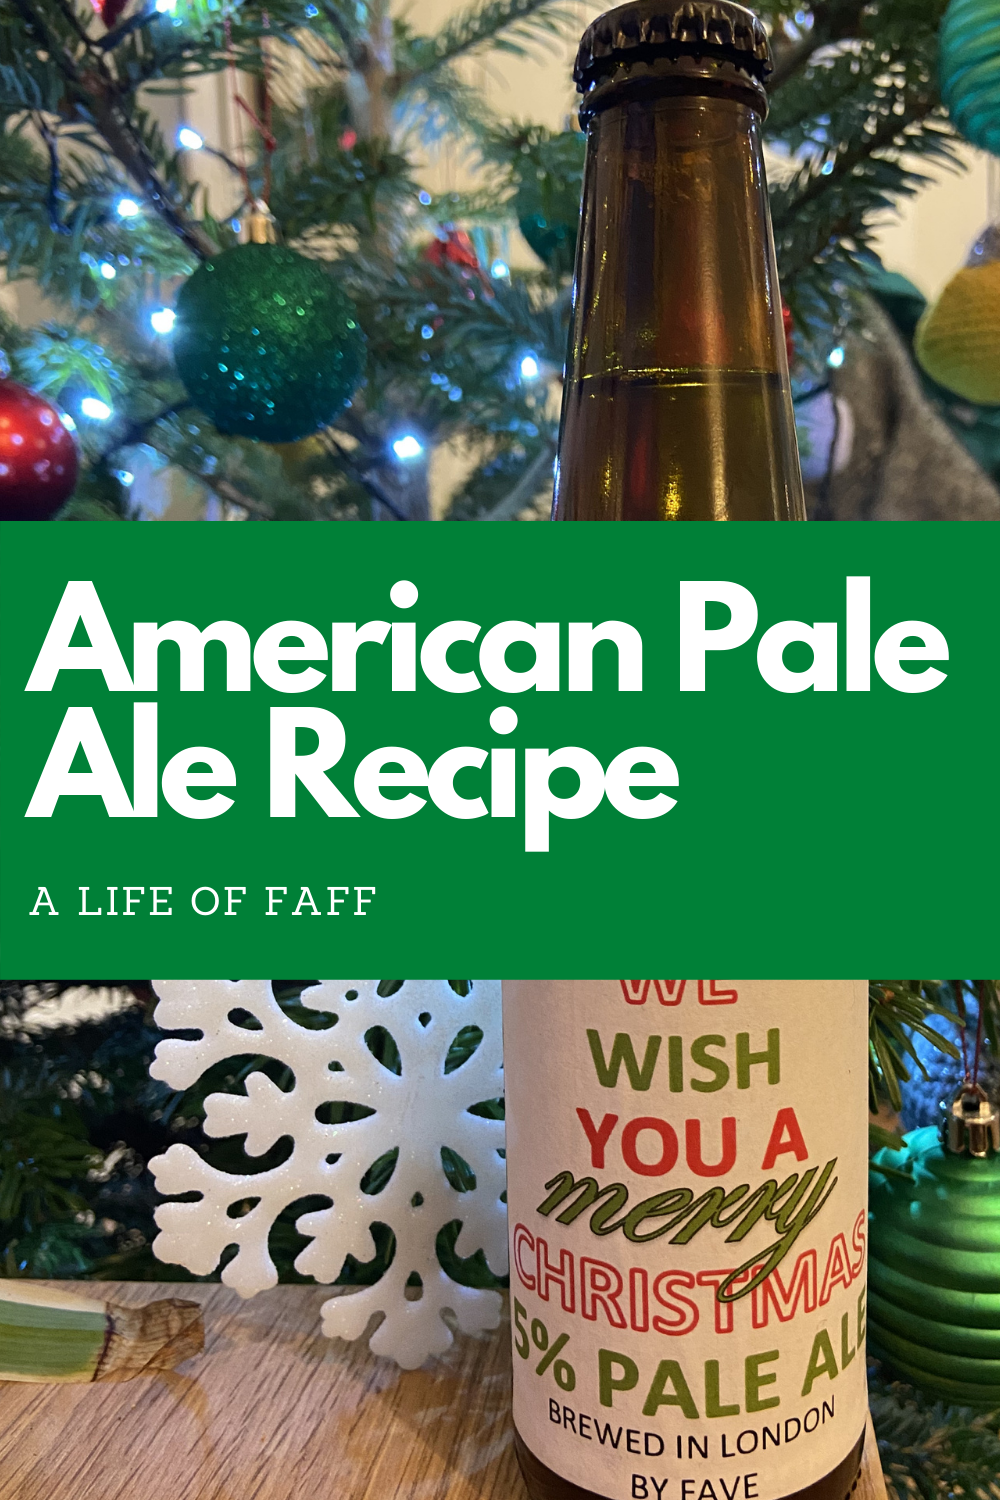 We wish you a Merry Christmas 5% pale ale Pin 3 for Pinterest